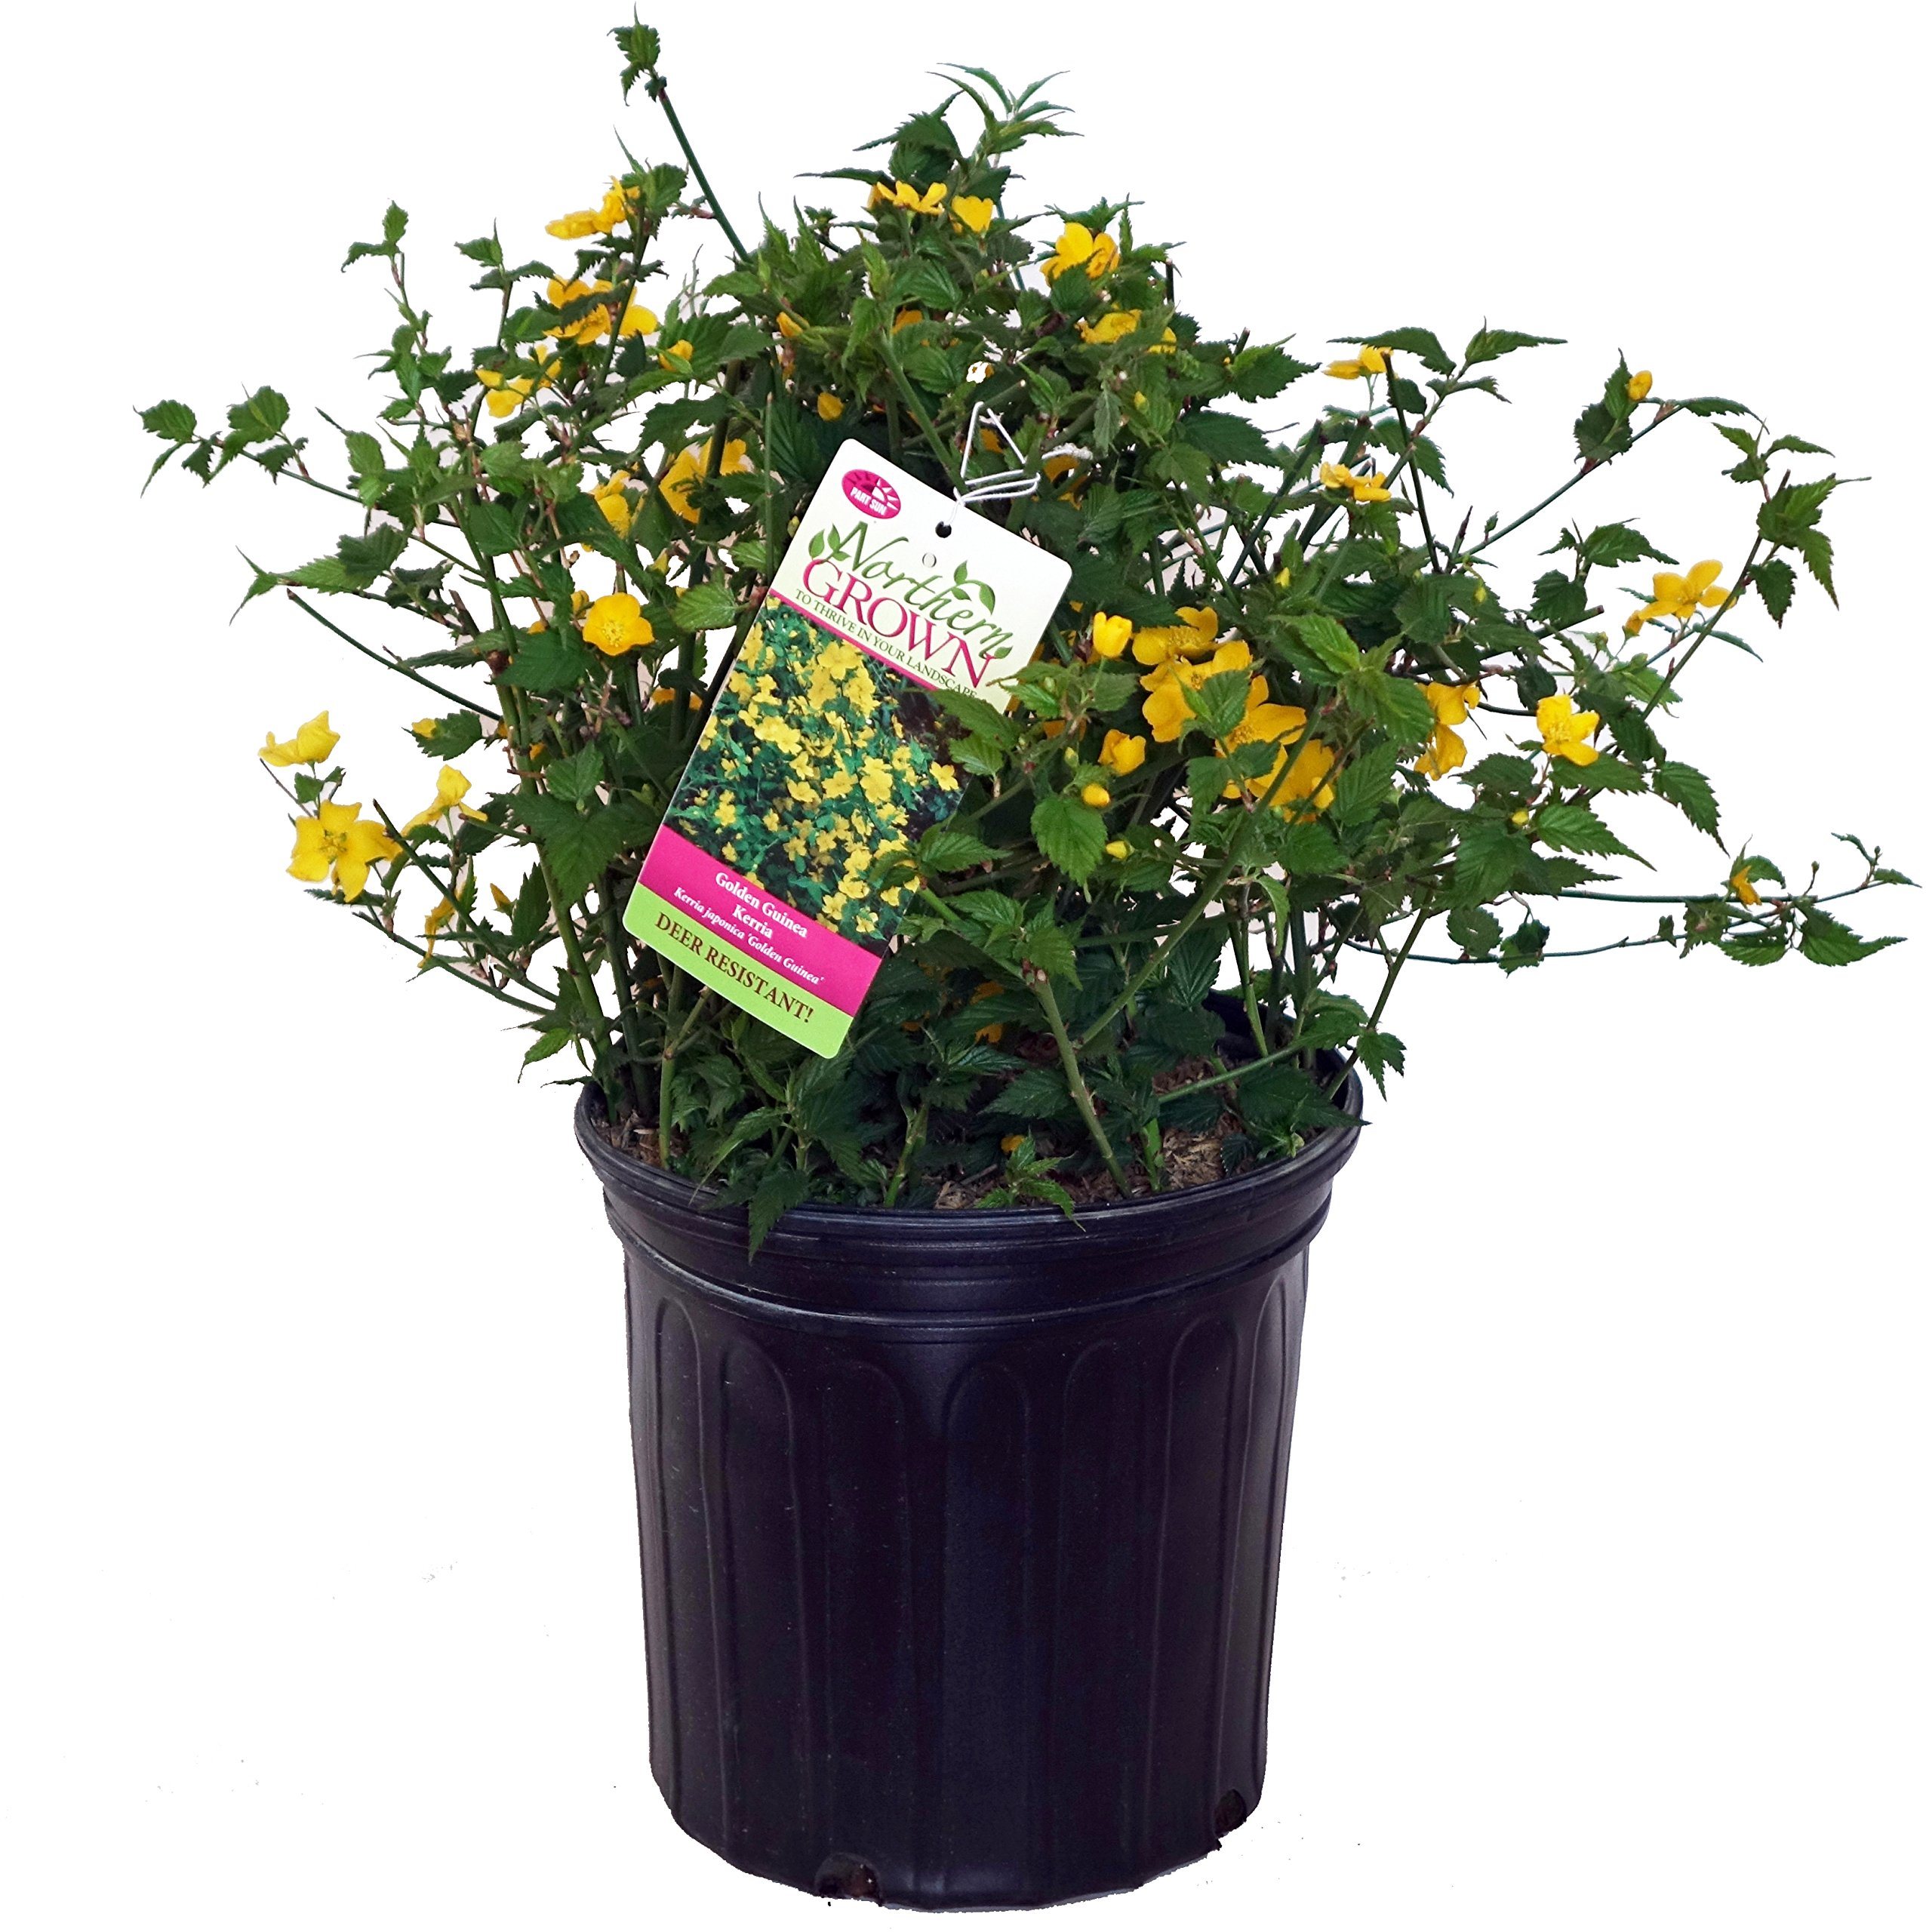 Kerria japonica 'Golden Guinea' (Japanese Kerria) Shrub, yellow flowers, #2 - Size Container